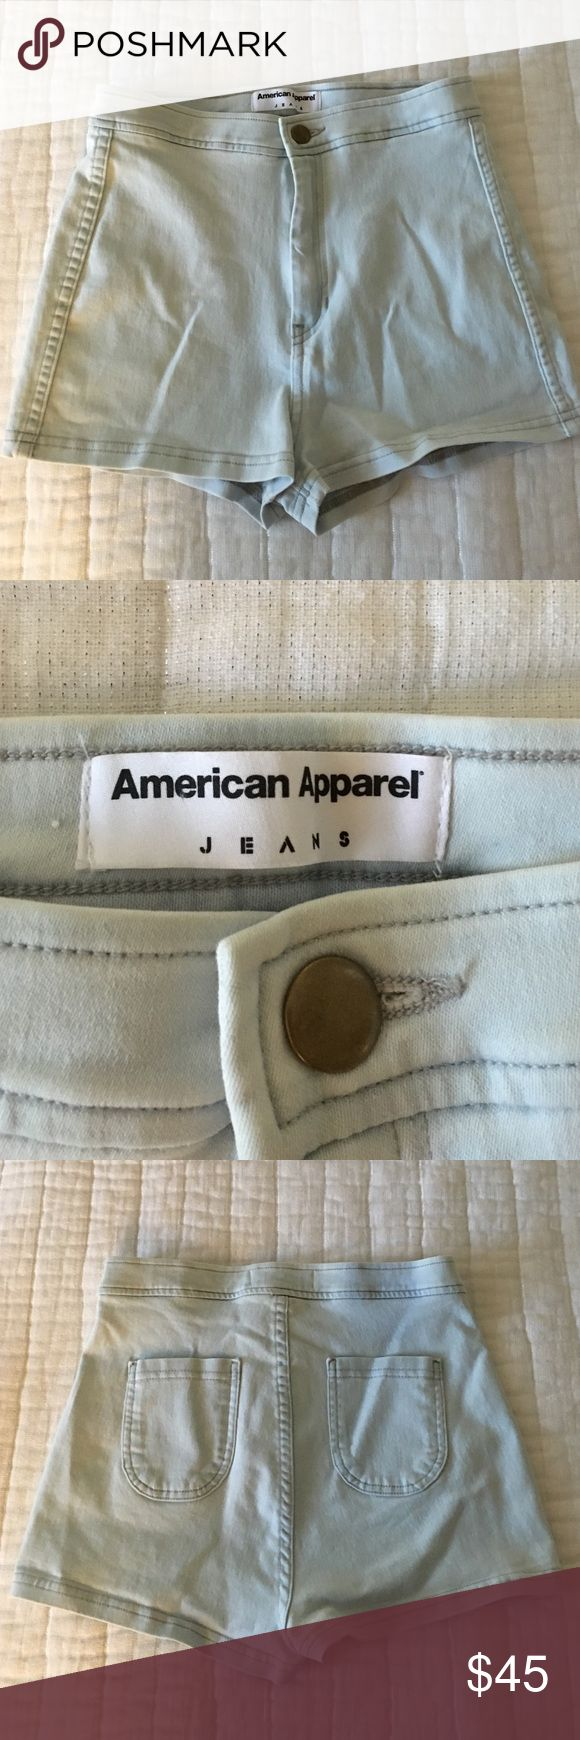 1000 Ideas About American Apparel Jeans On Pinterest